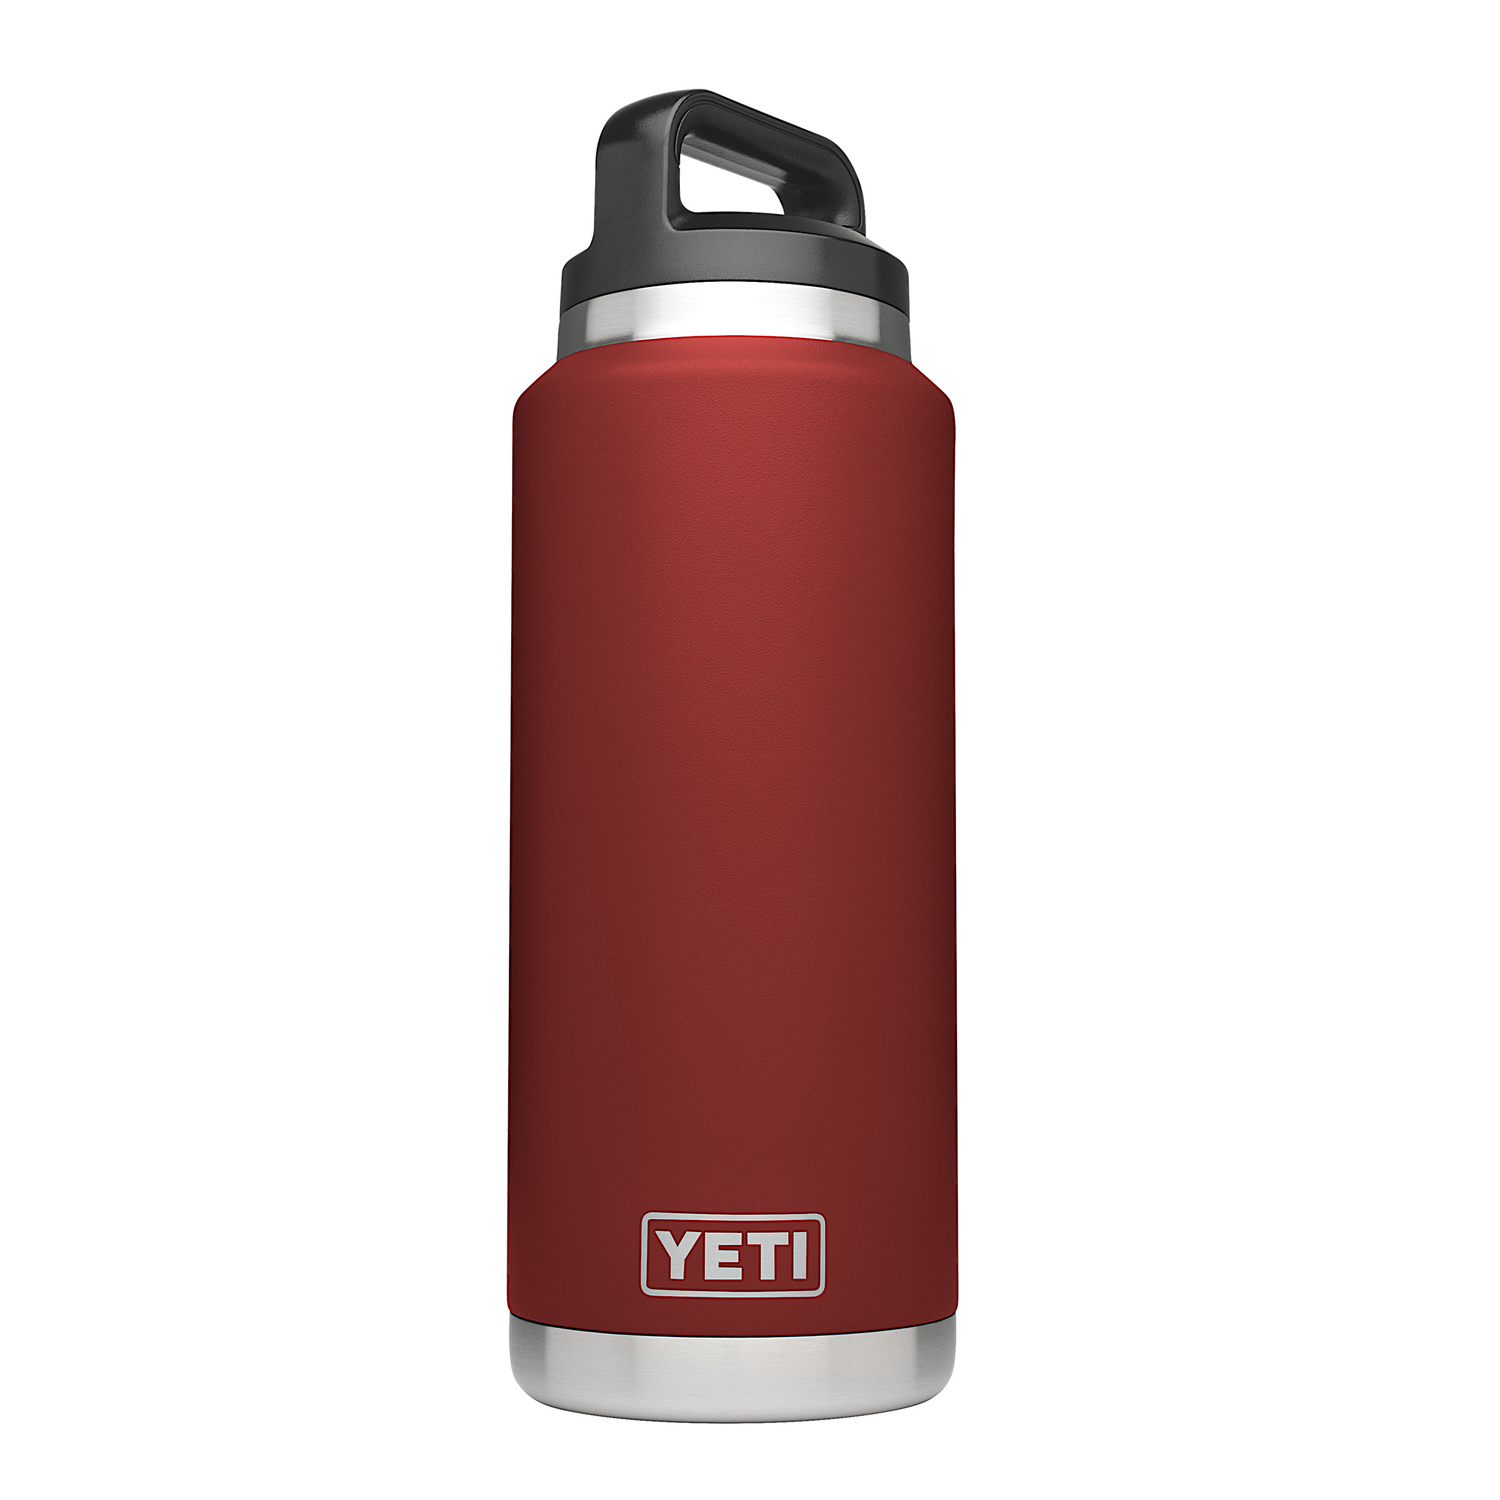 YETI  Rambler  Brick Red  Insulated Bottle  Stainless Steel  BPA Free 36 oz.